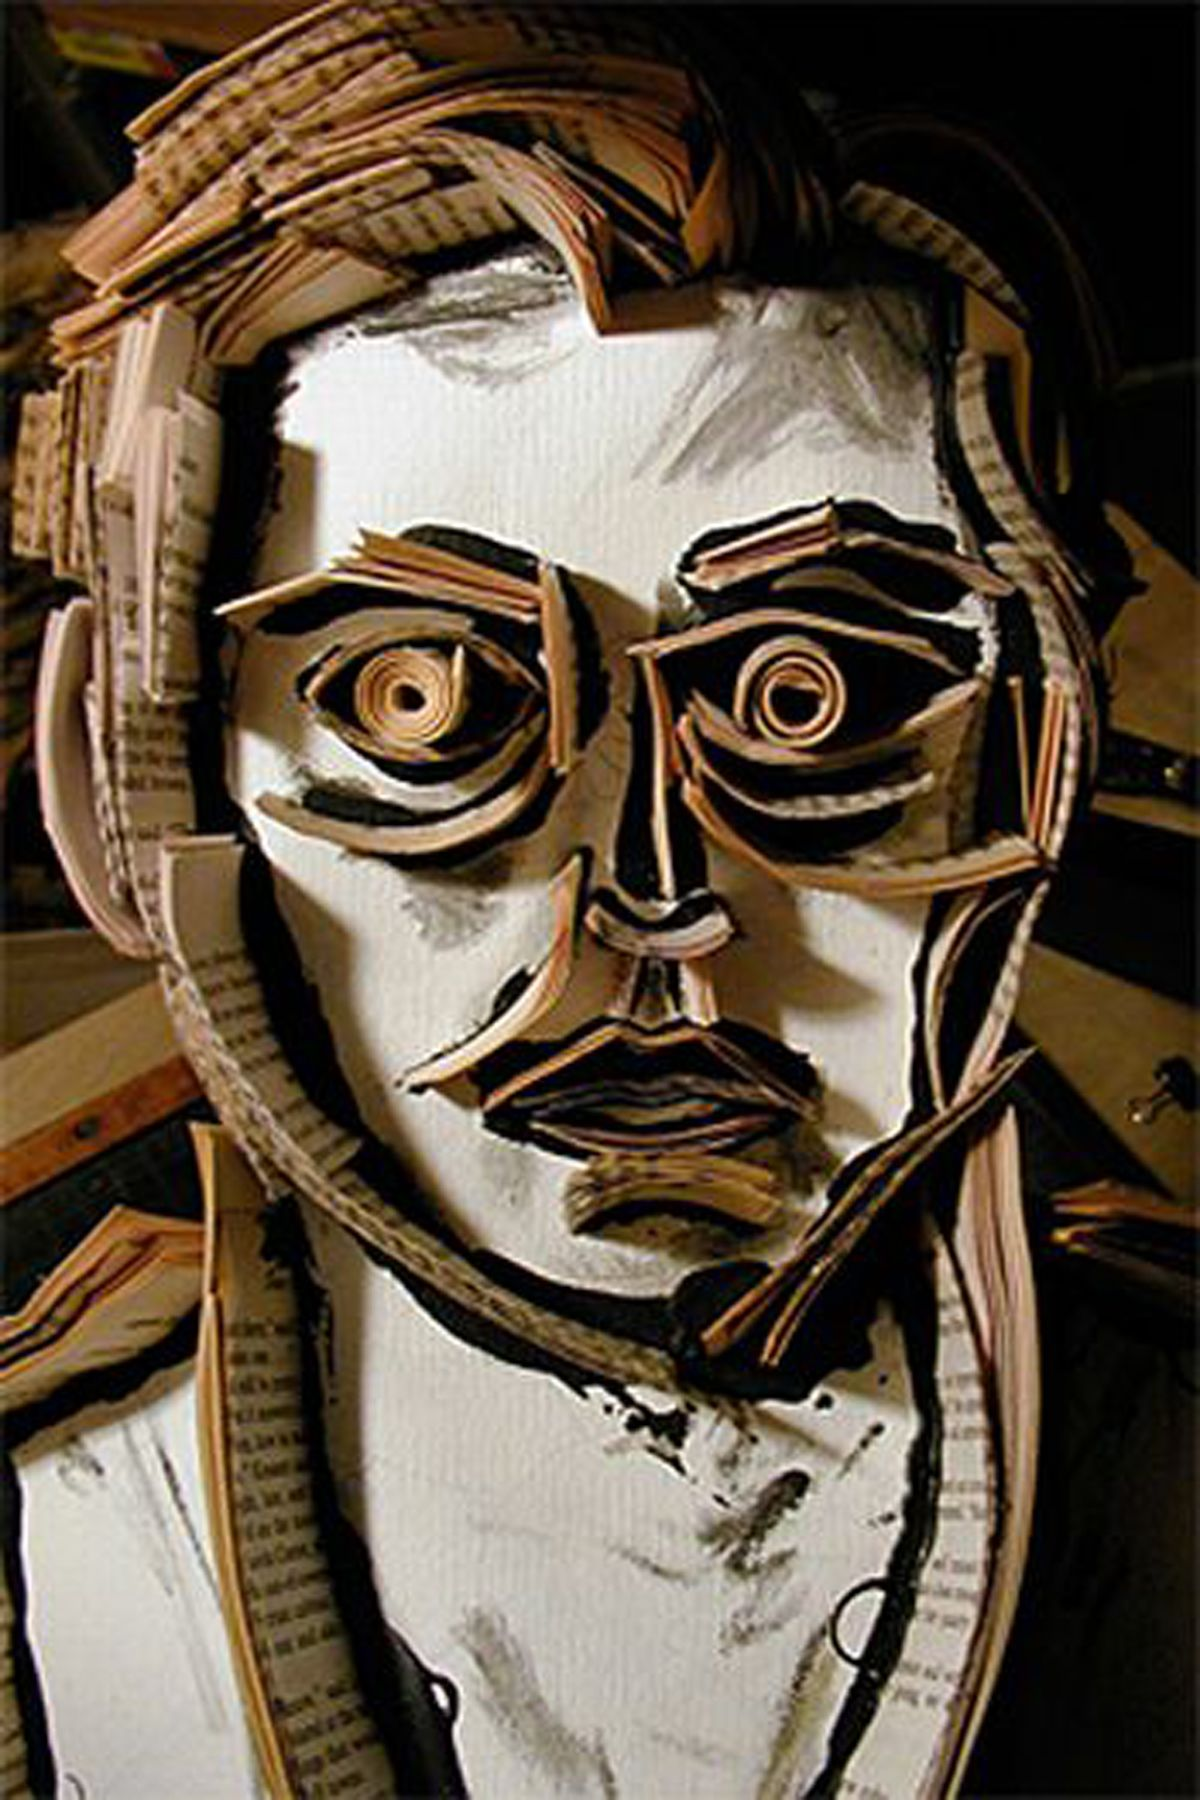 Cardboard art projects 3d design photo description and for 3d art projects